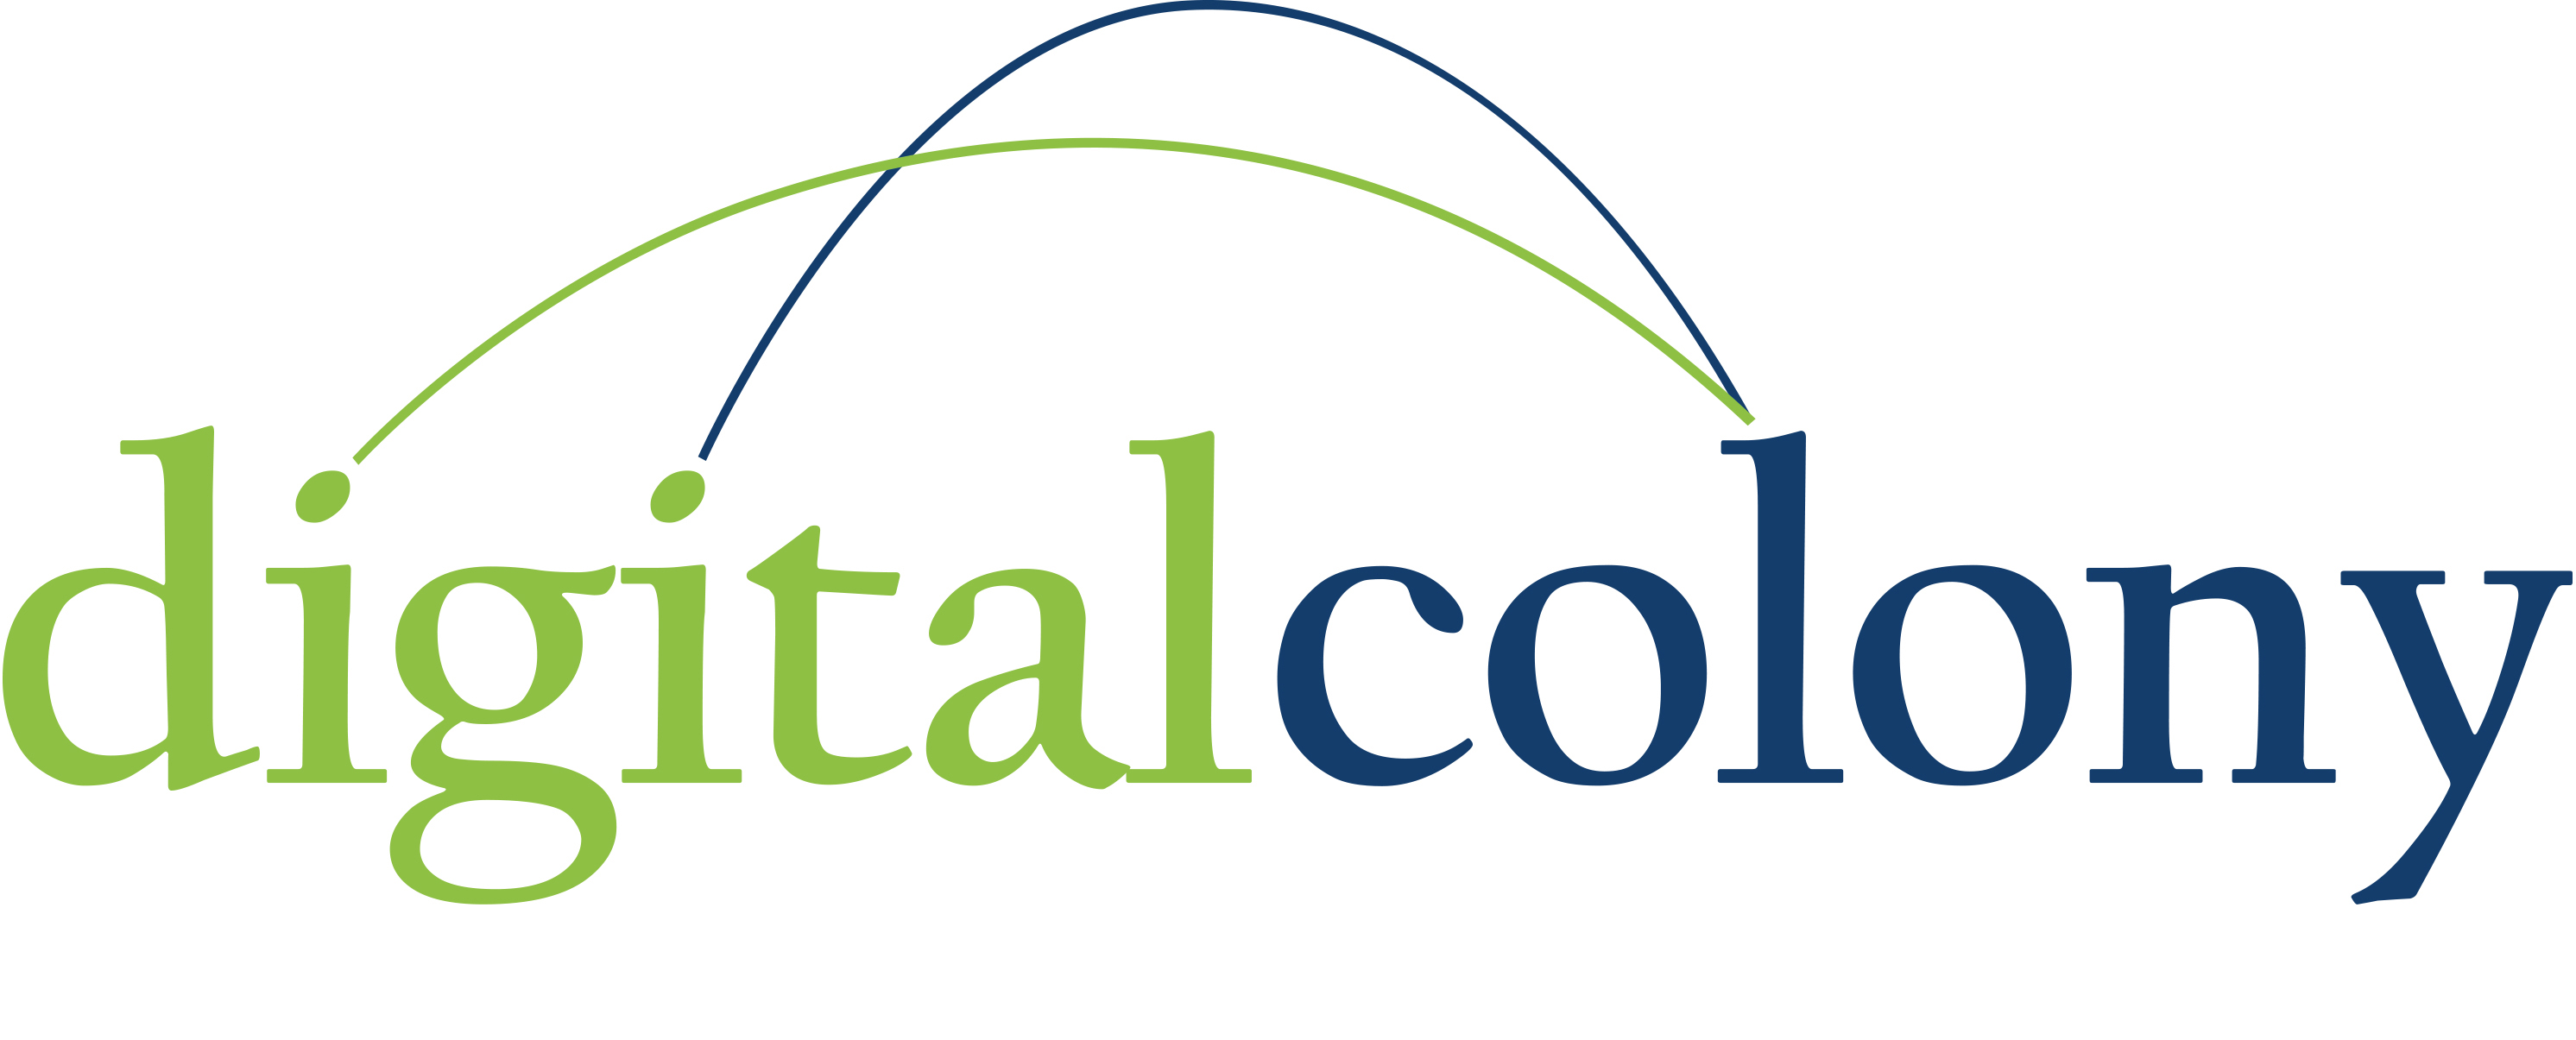 Digital Colony Management, LLC